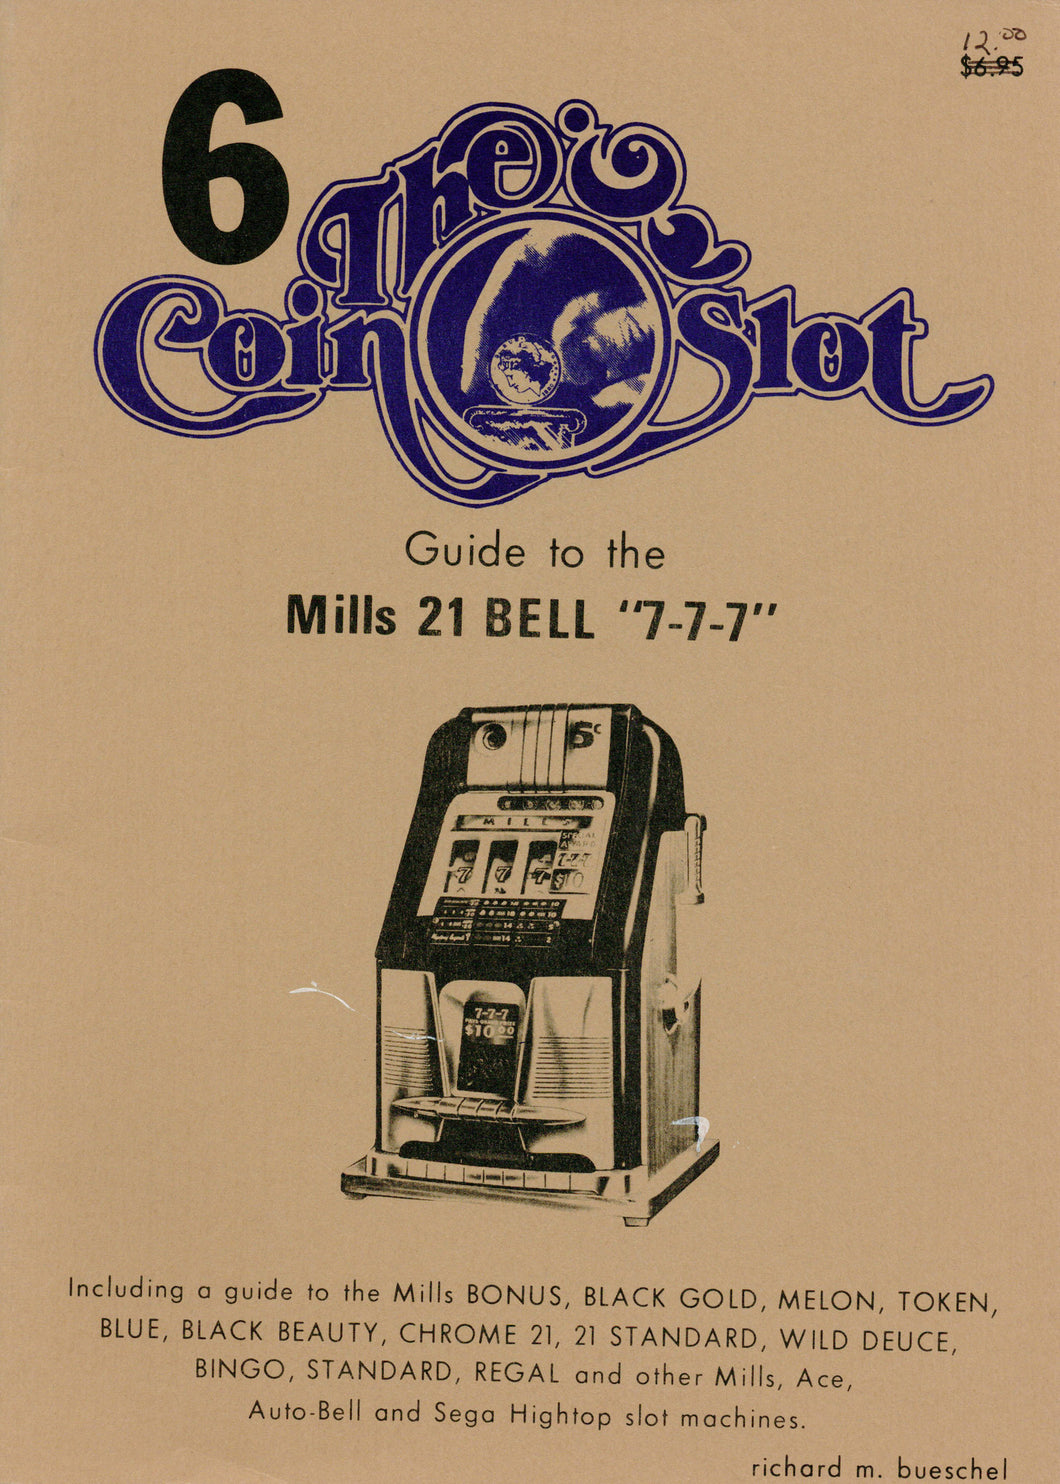 Coin Slot # 6. Guide to the Mills 21 Bell